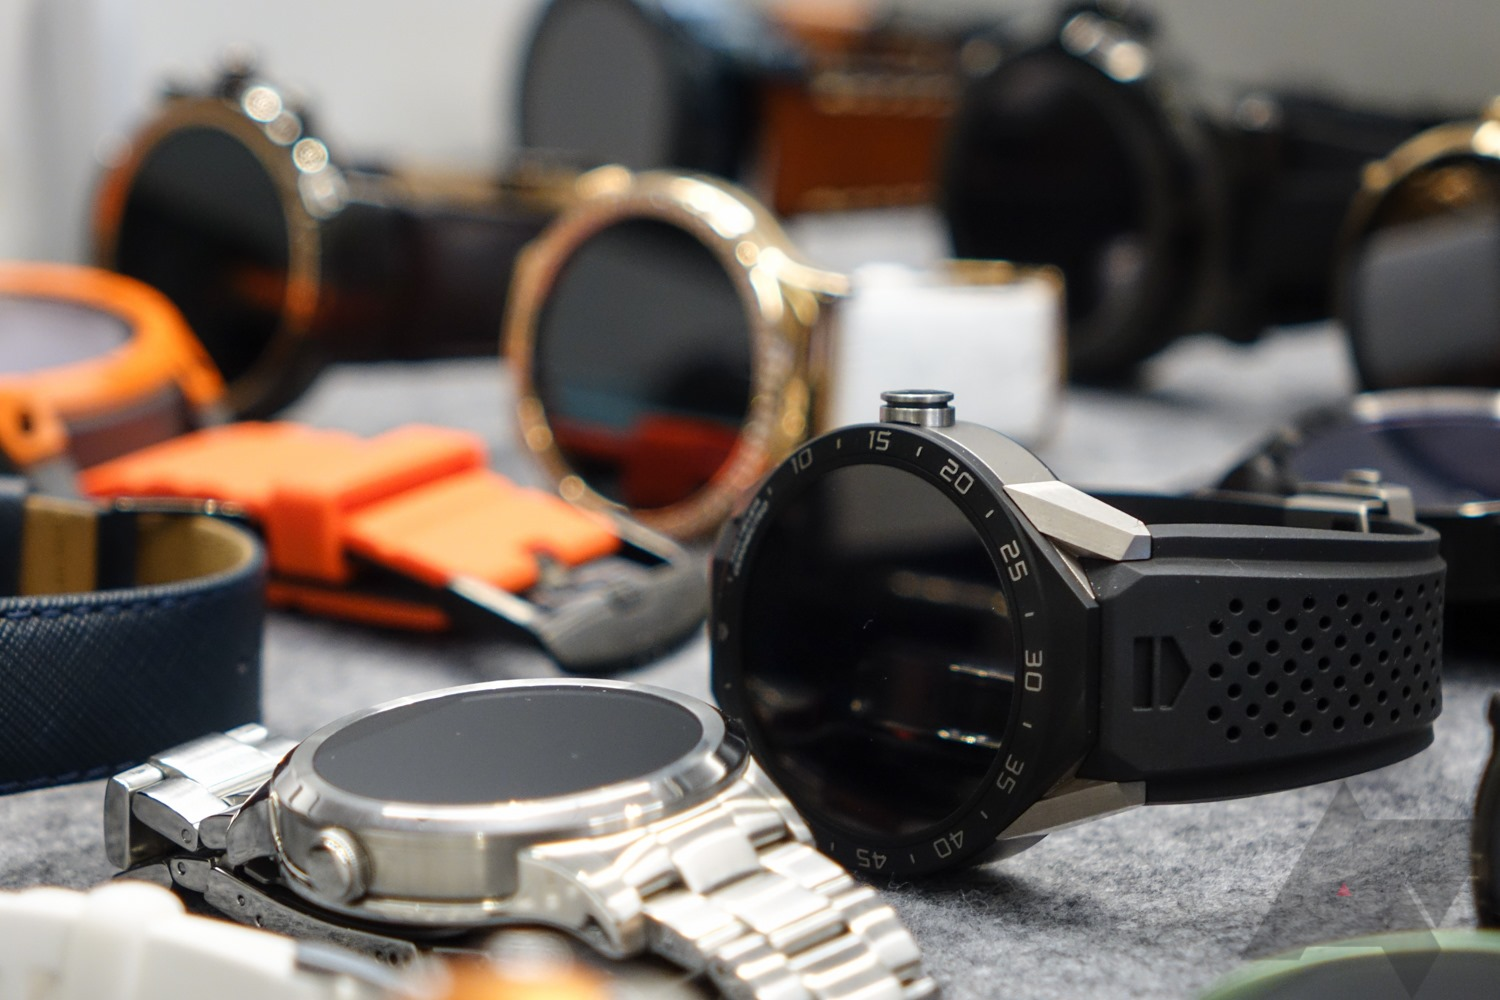 Until we have an Apple Watch of our own, no one is going to take Android Wear seriously (opinion)